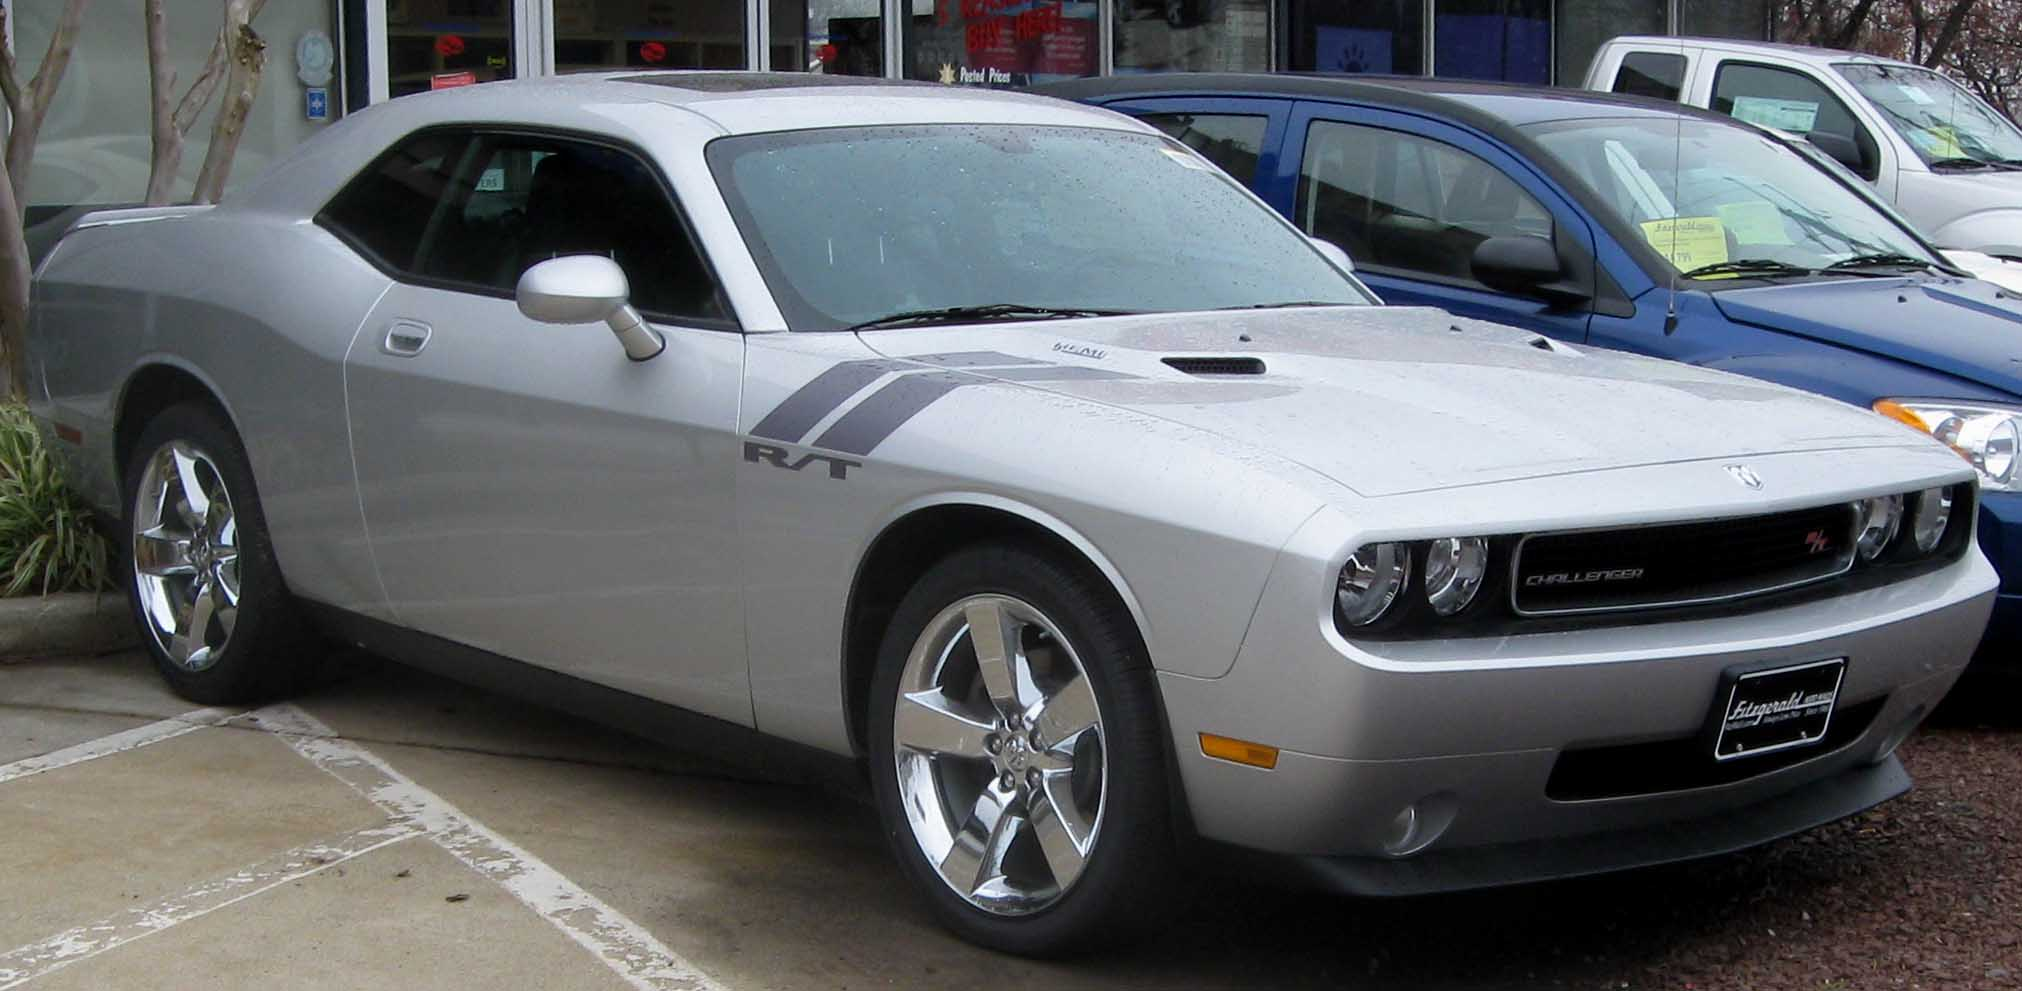 2015 Dodge Challenger- The Best Mix of Classic Modern Cars #3